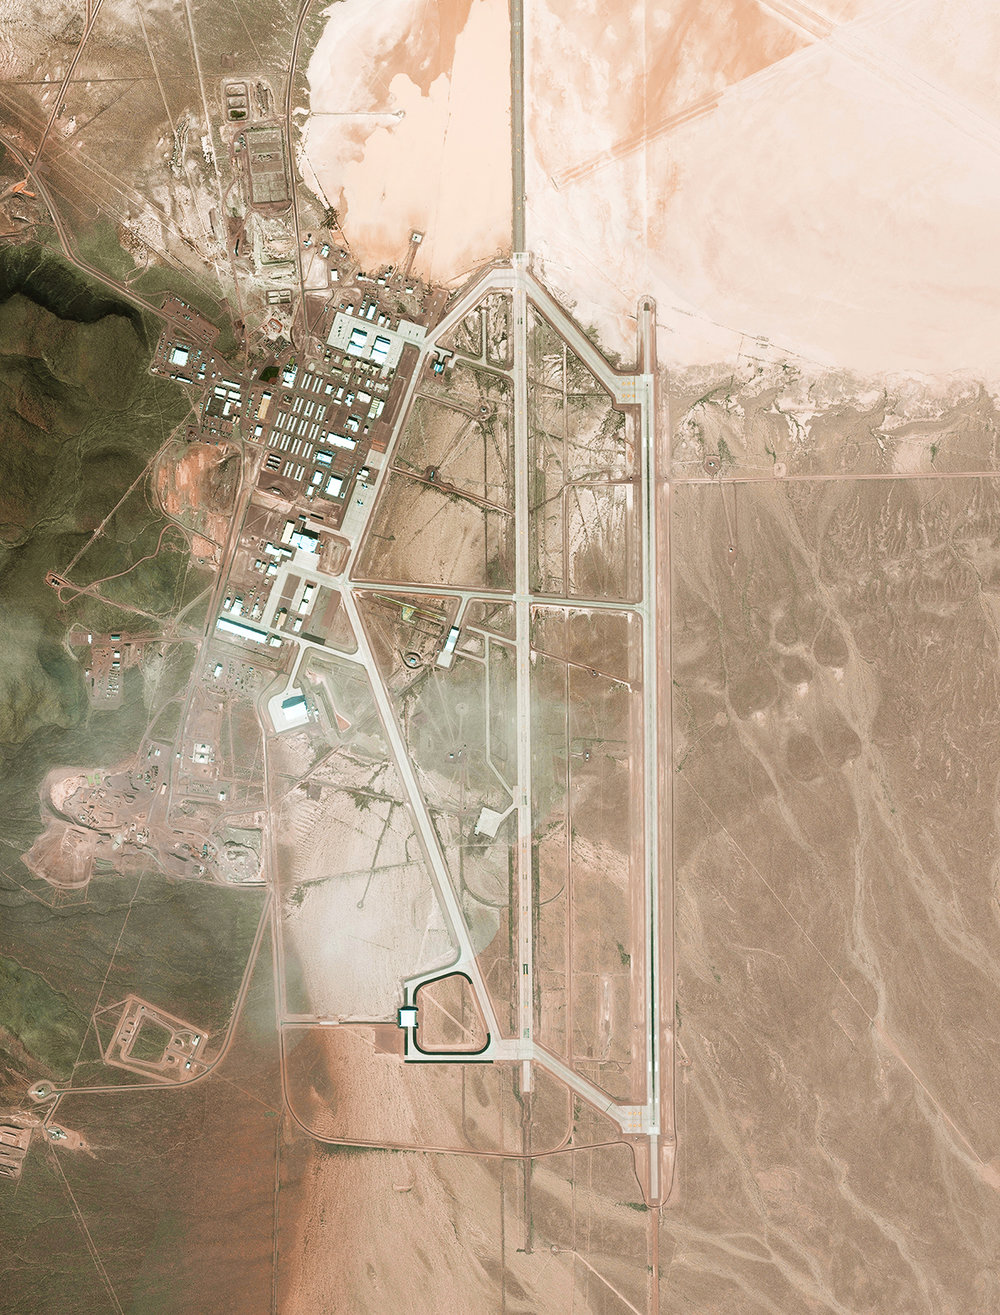 4/1/2017 Area 51 Nevada, USA 37.235,-115.811111 BREAKING: The U.S. Government has just released highly classified documents pertaining to Area 51 - its research facility in Nevada, USA. The Secretary of Defense will be holding a press conference within the next 24 hours to address the media on the subject. Initial reports seem to suggest that the ex-classified documents detail the reverse engineering of extra-terrestrial technology including weaponry and vehicles. We'll keep you posted if we hear anything else today. Source imagery: DigitalGlobe